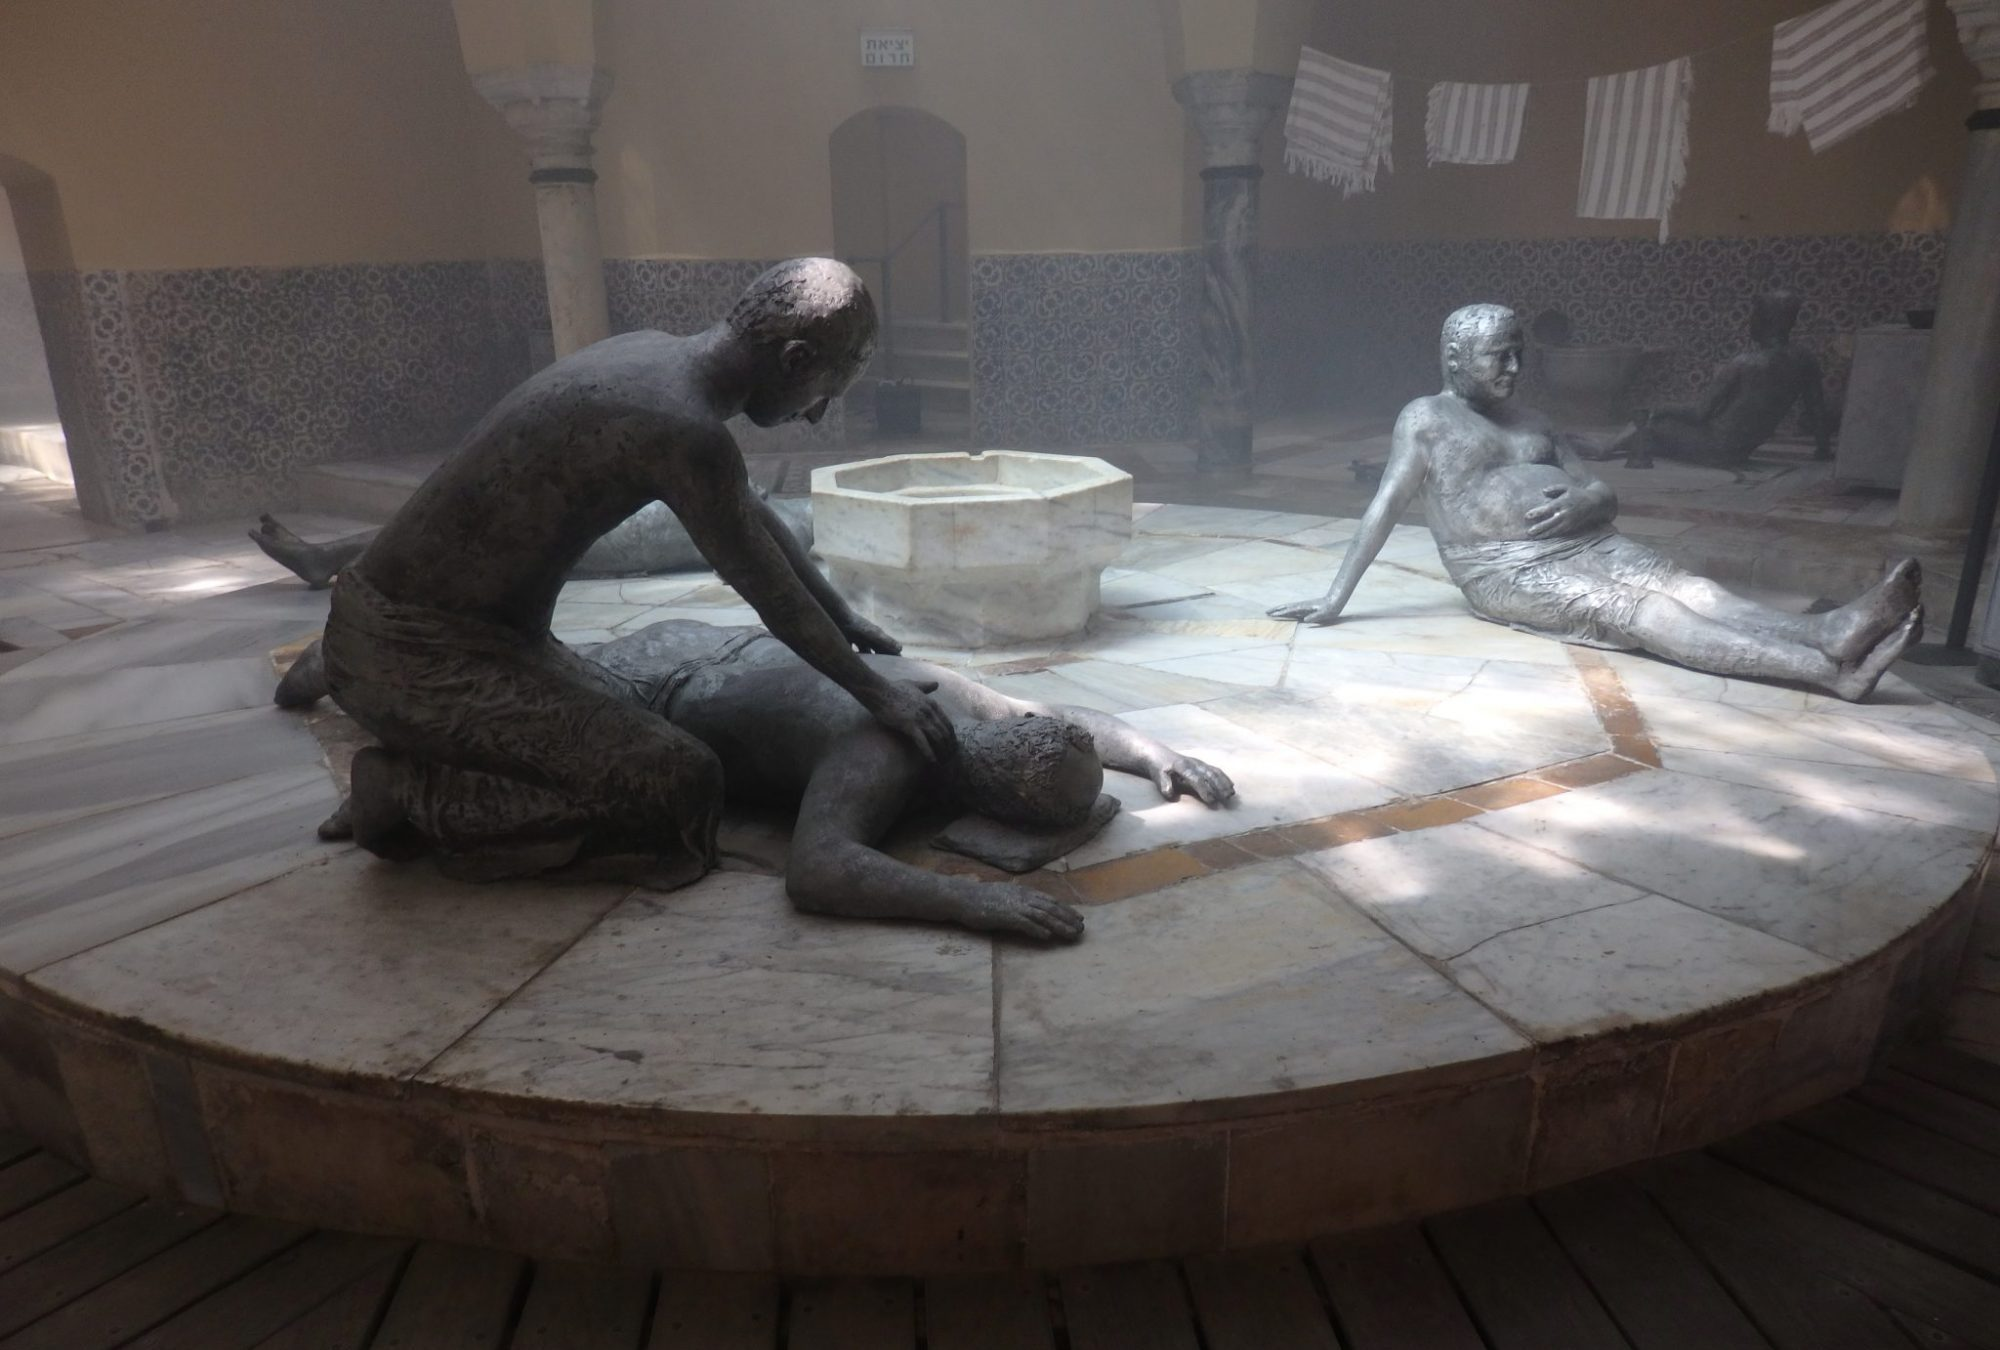 Inside the Turkish bathhouse in Akko old city, statues show what it might have looked like as men enjoyed the steambath or got a massage.